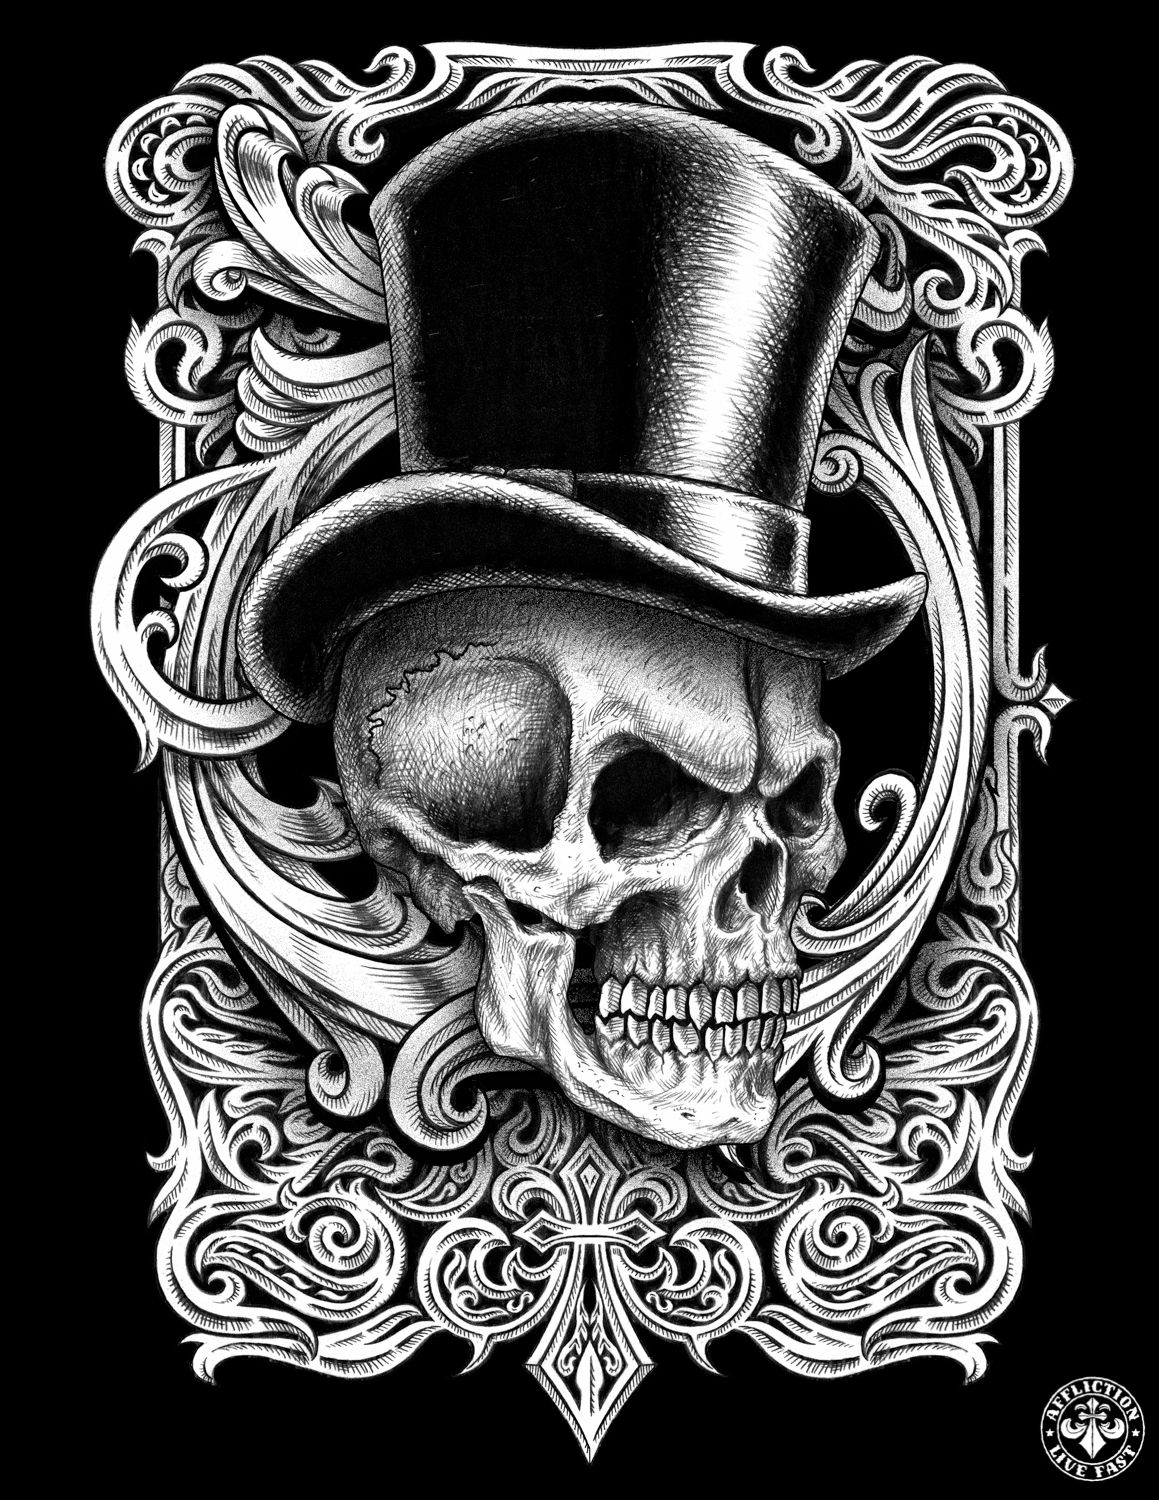 skull with tophat google search kool tattoos pinterest google searching and tattoo. Black Bedroom Furniture Sets. Home Design Ideas